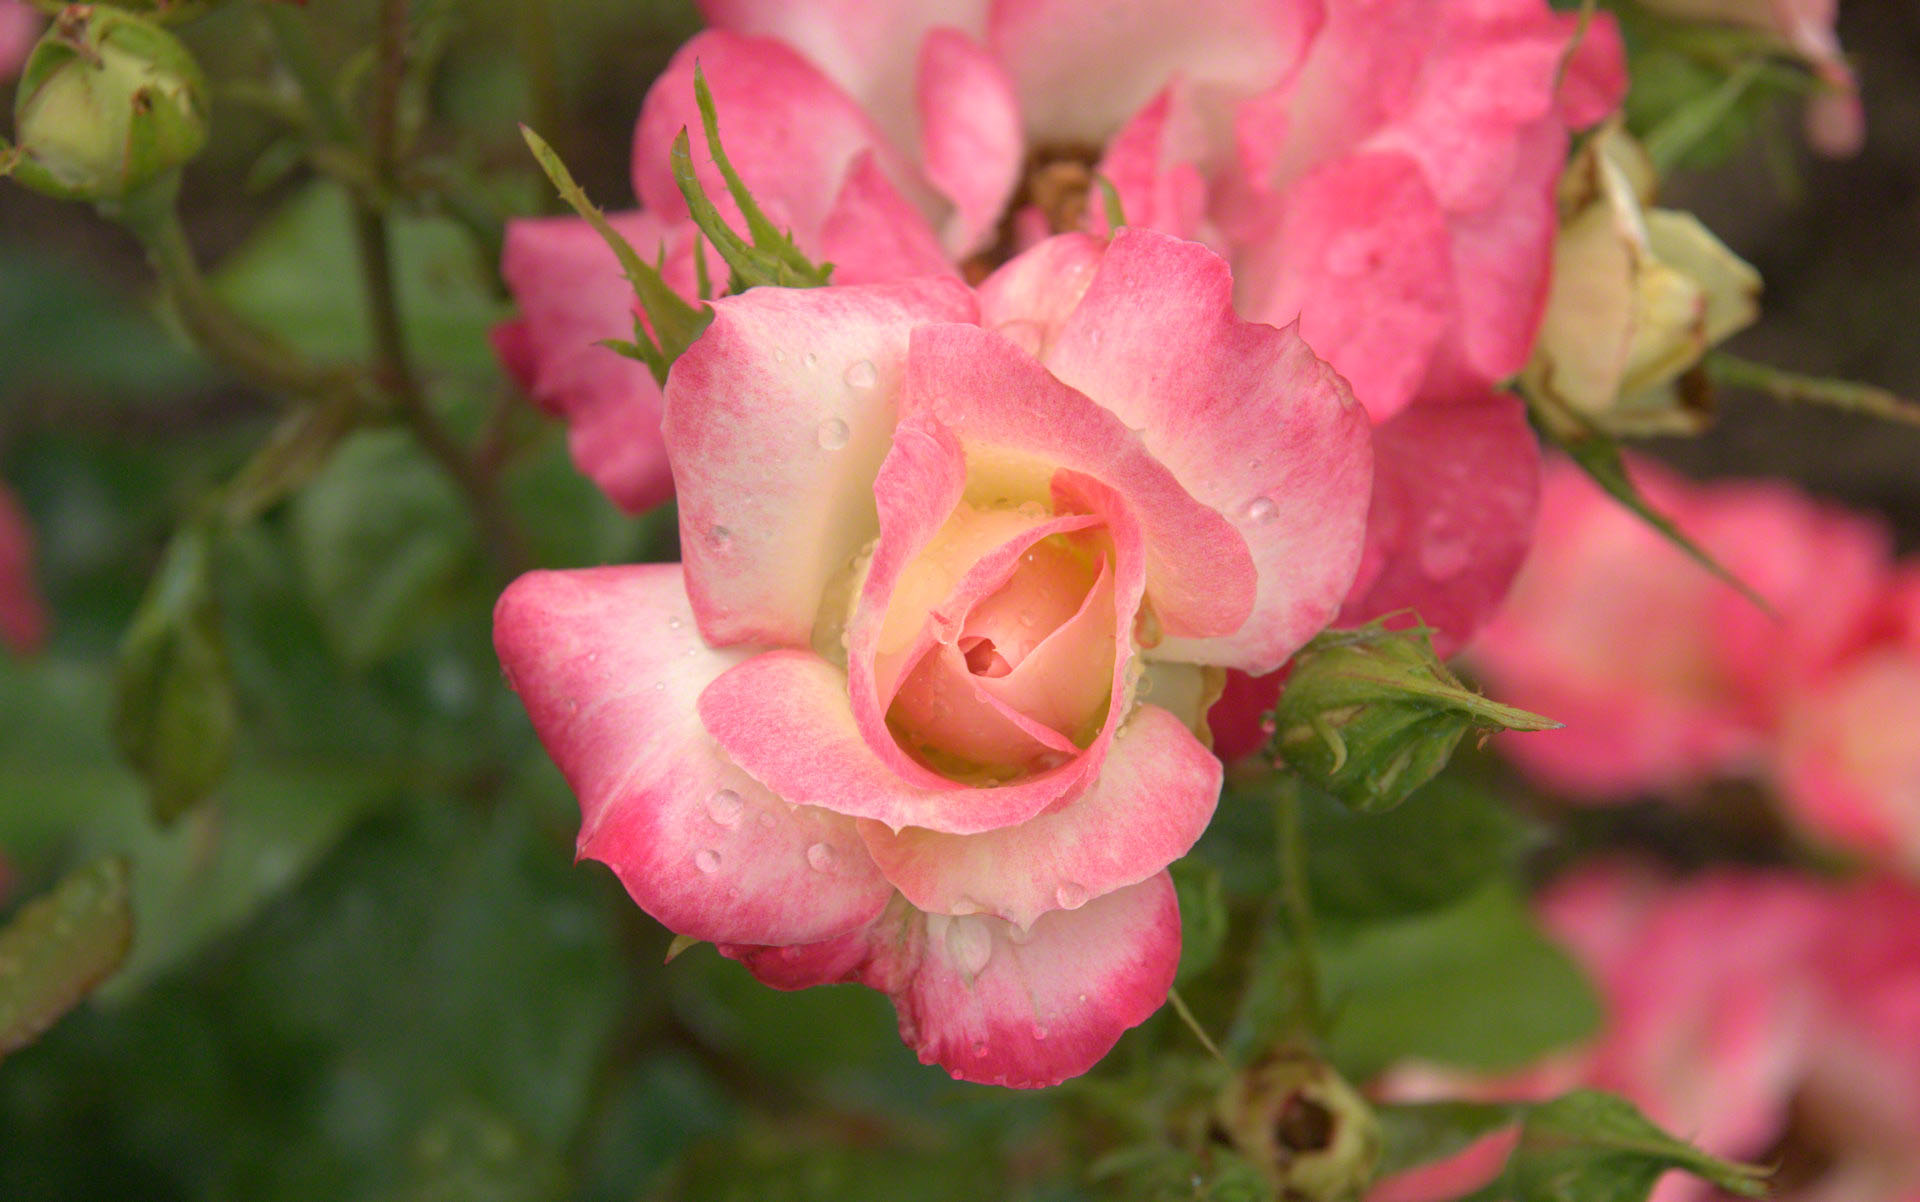 http://www.fabiovisentin.com/photography/photo/12/raindrop-pink-rose-closeup-dsc04419.jpg